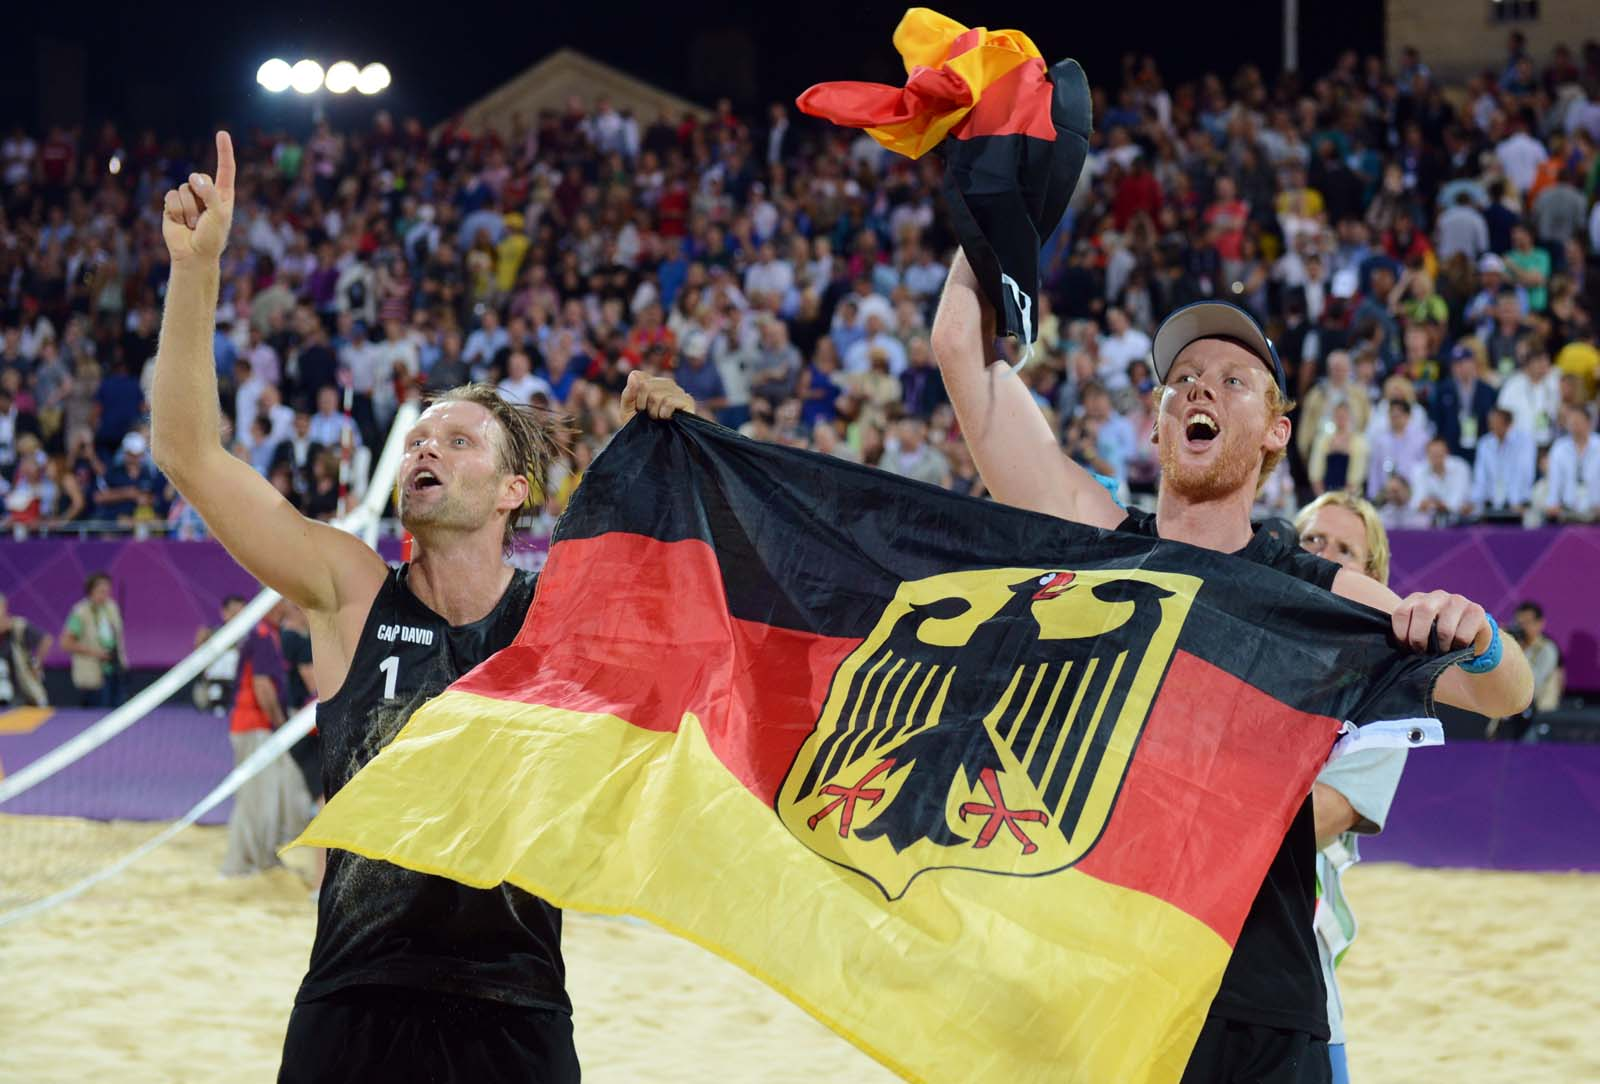 Julius Brink and Jonas Reckermann celebrate winning gold at the London 2012 Olympic Games